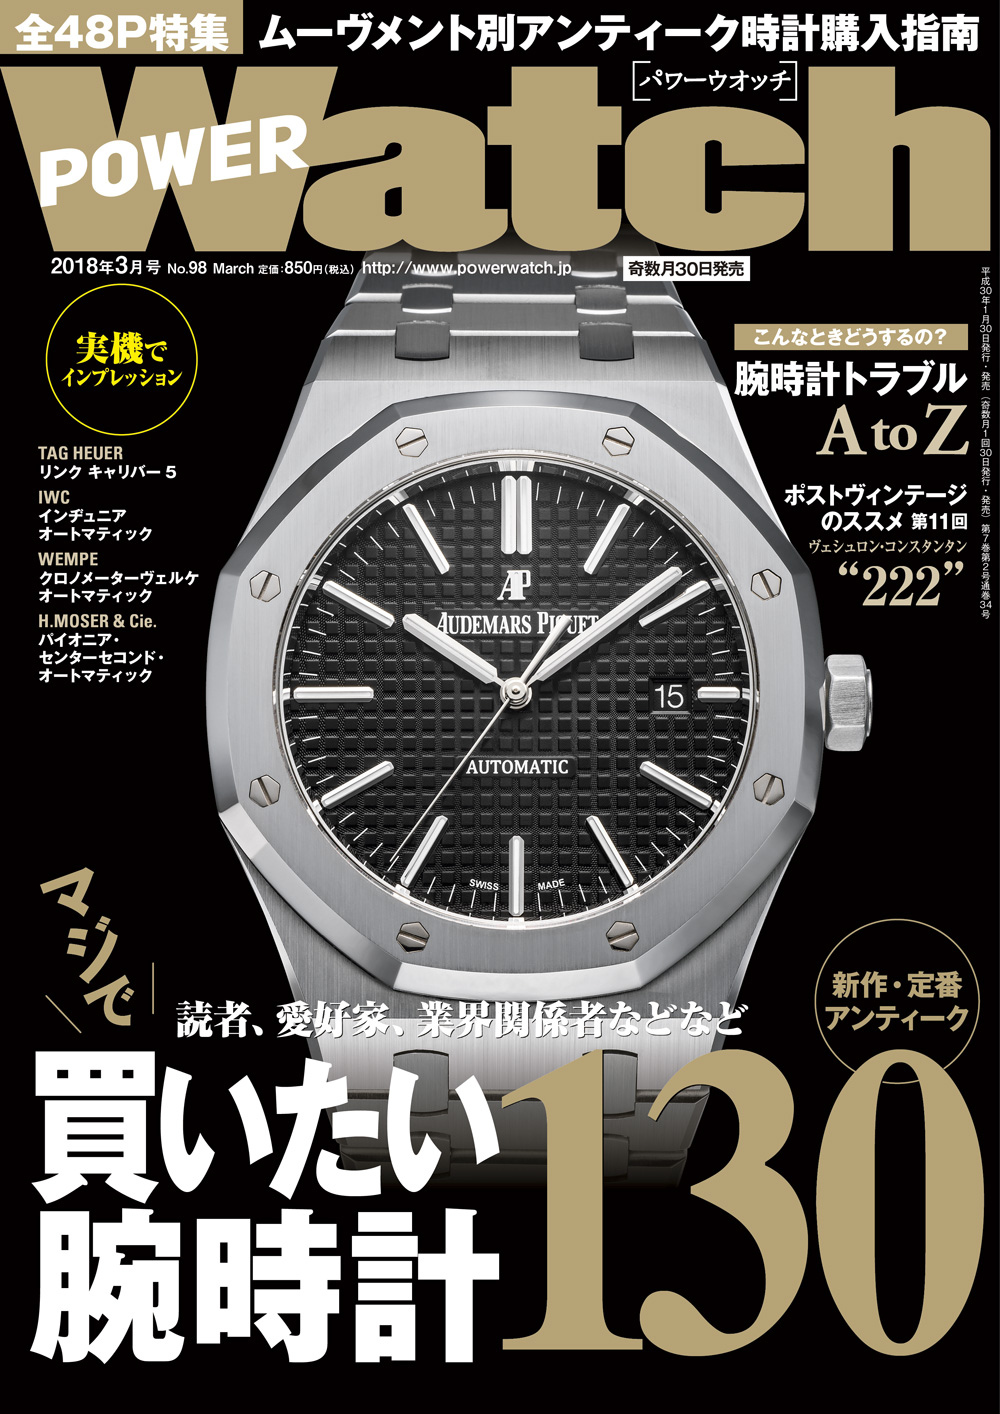 C's-Factory|電子書籍|POWER Watch No.98